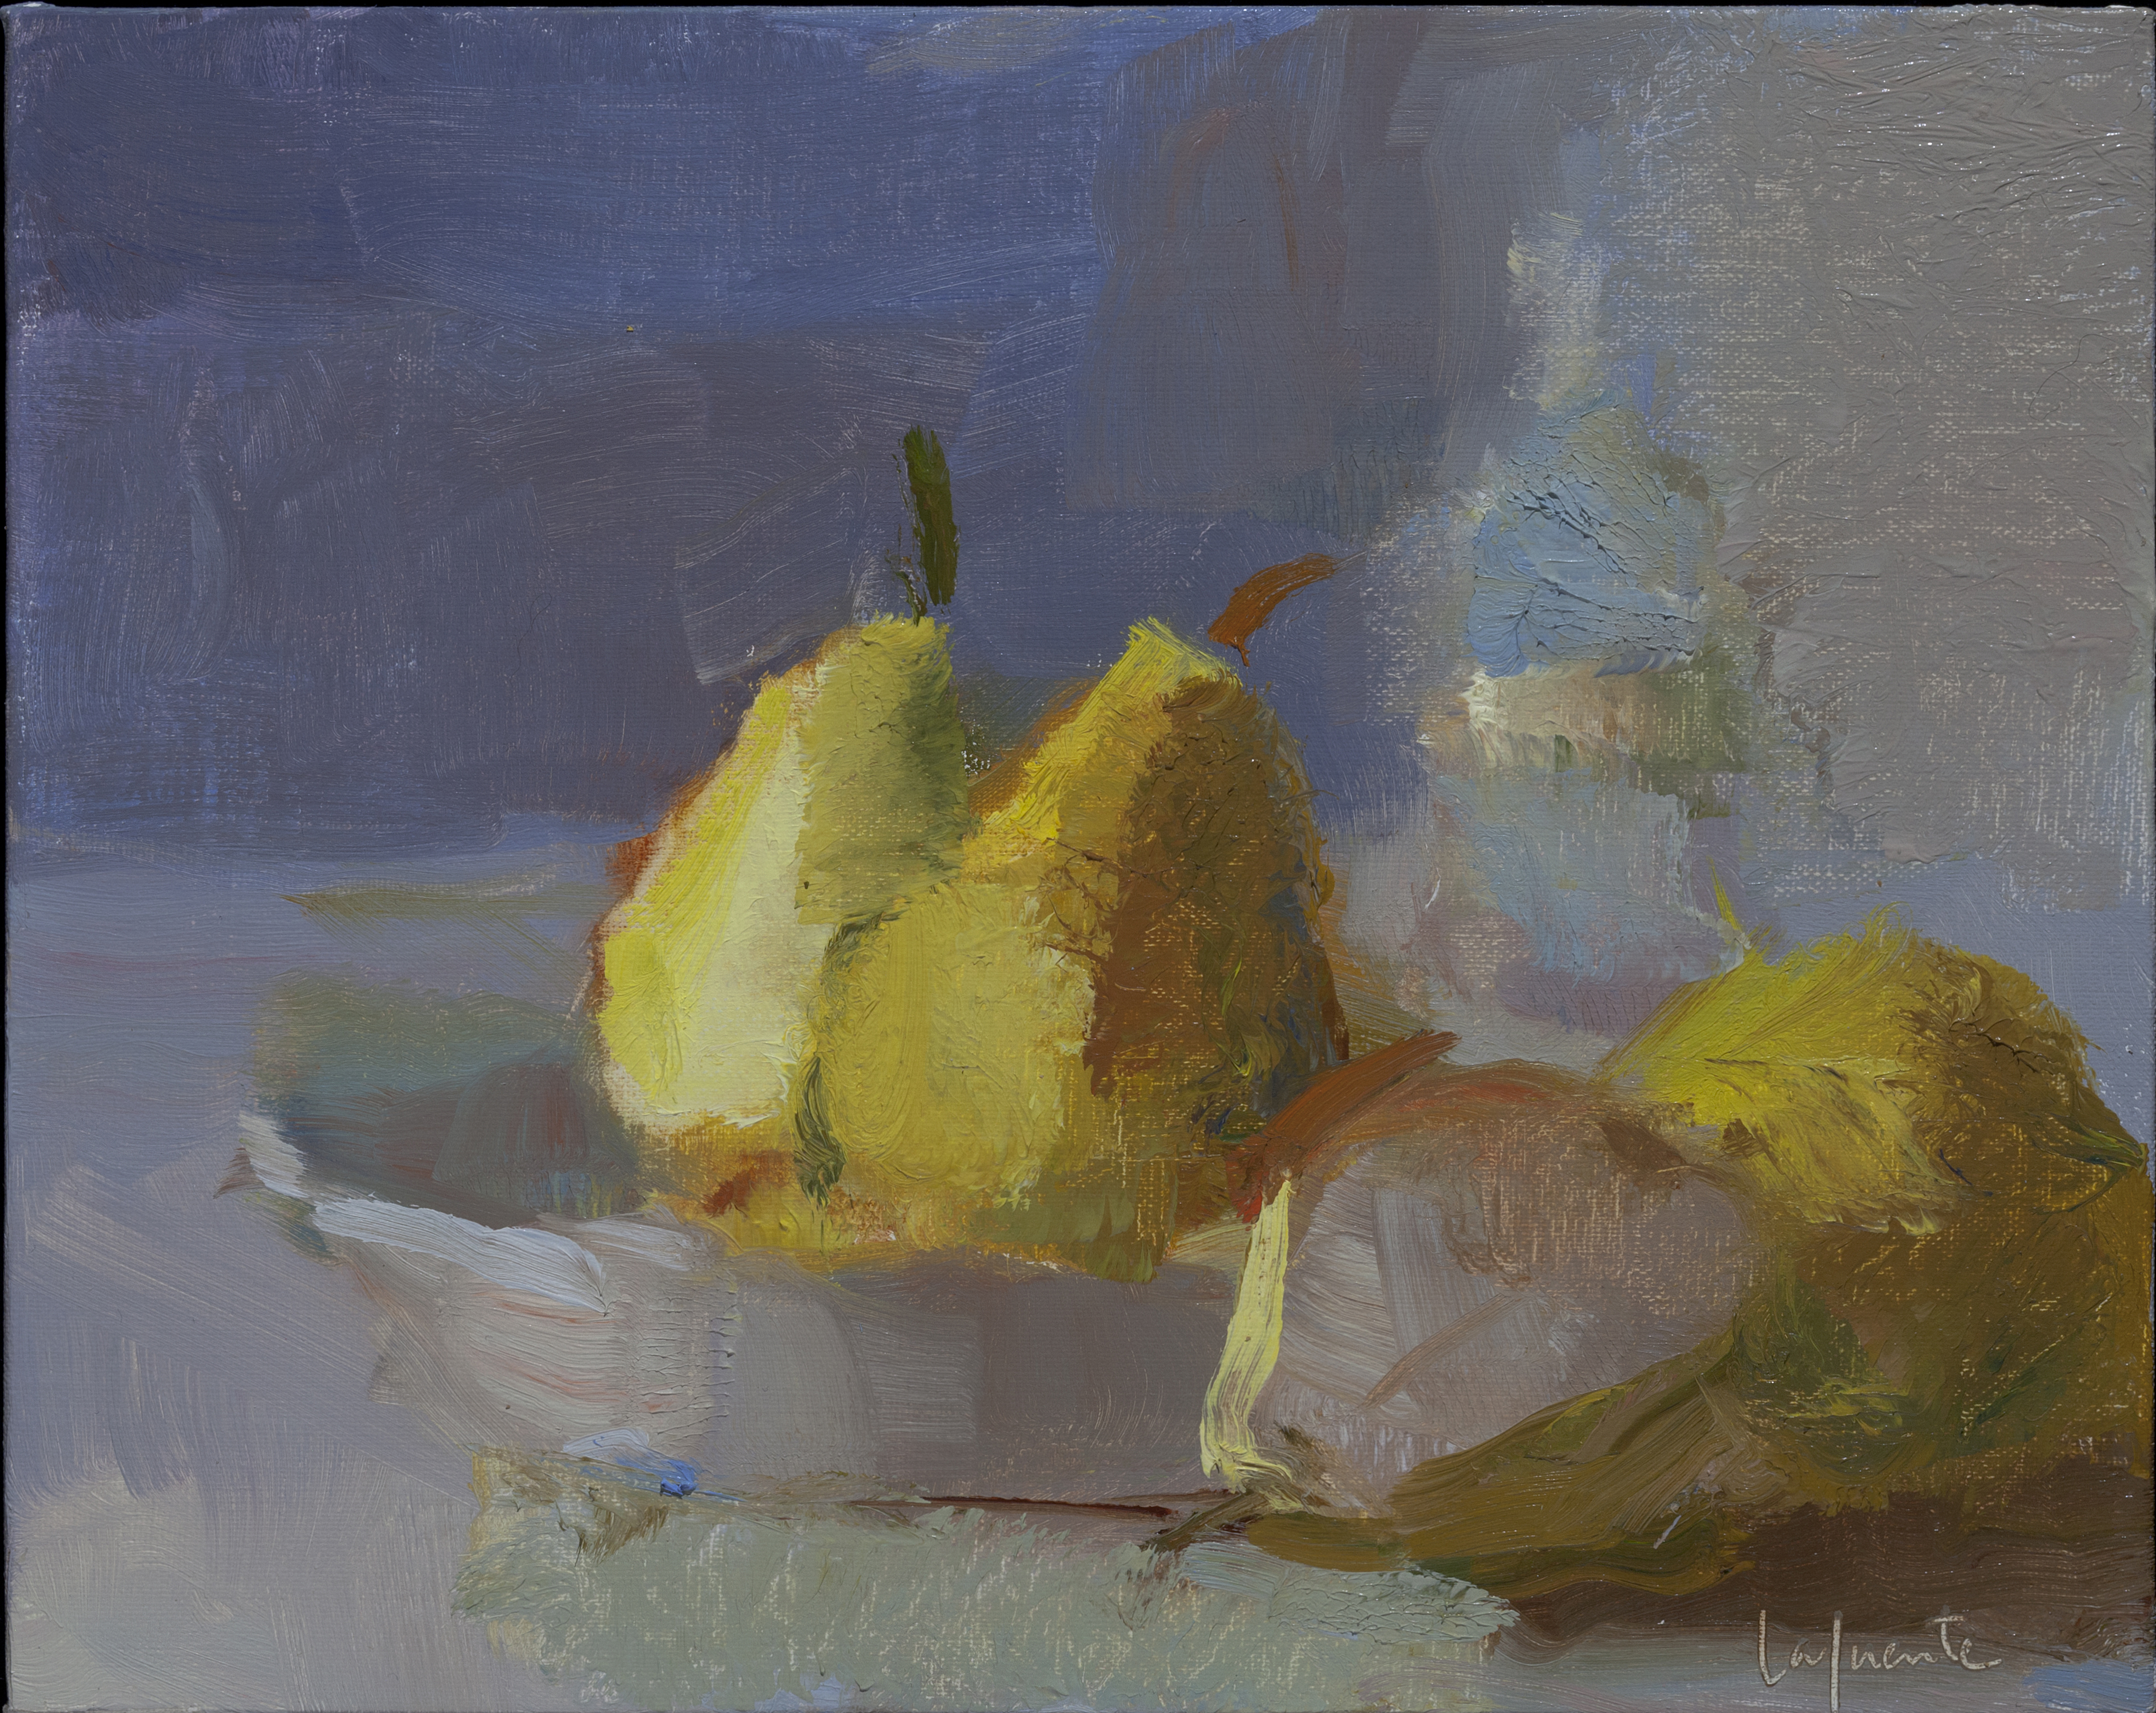 Christine Lafuente, Pears and Bottle, 2015, oil on linen, 8 x 10 inches